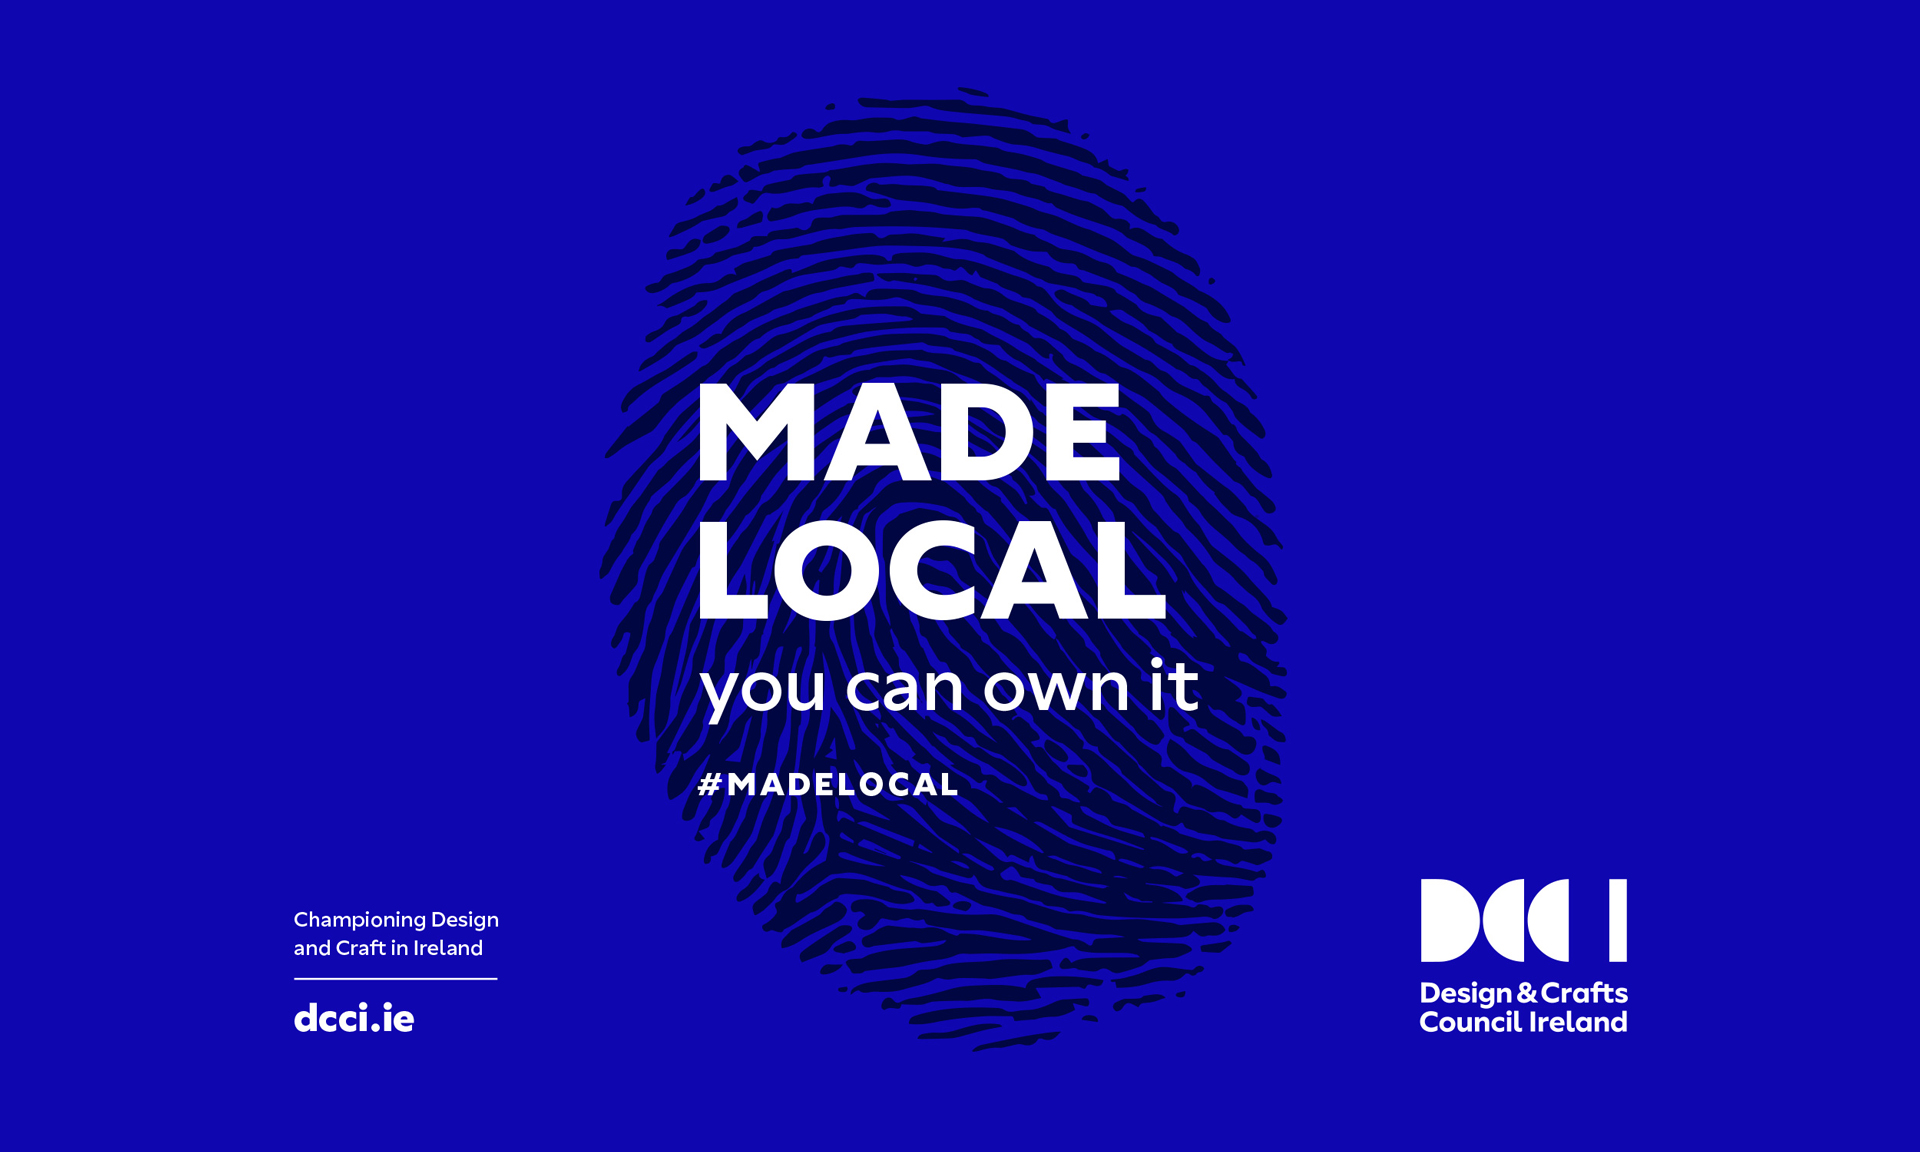 Cover image: Design & Crafts Council Ireland: Made Local